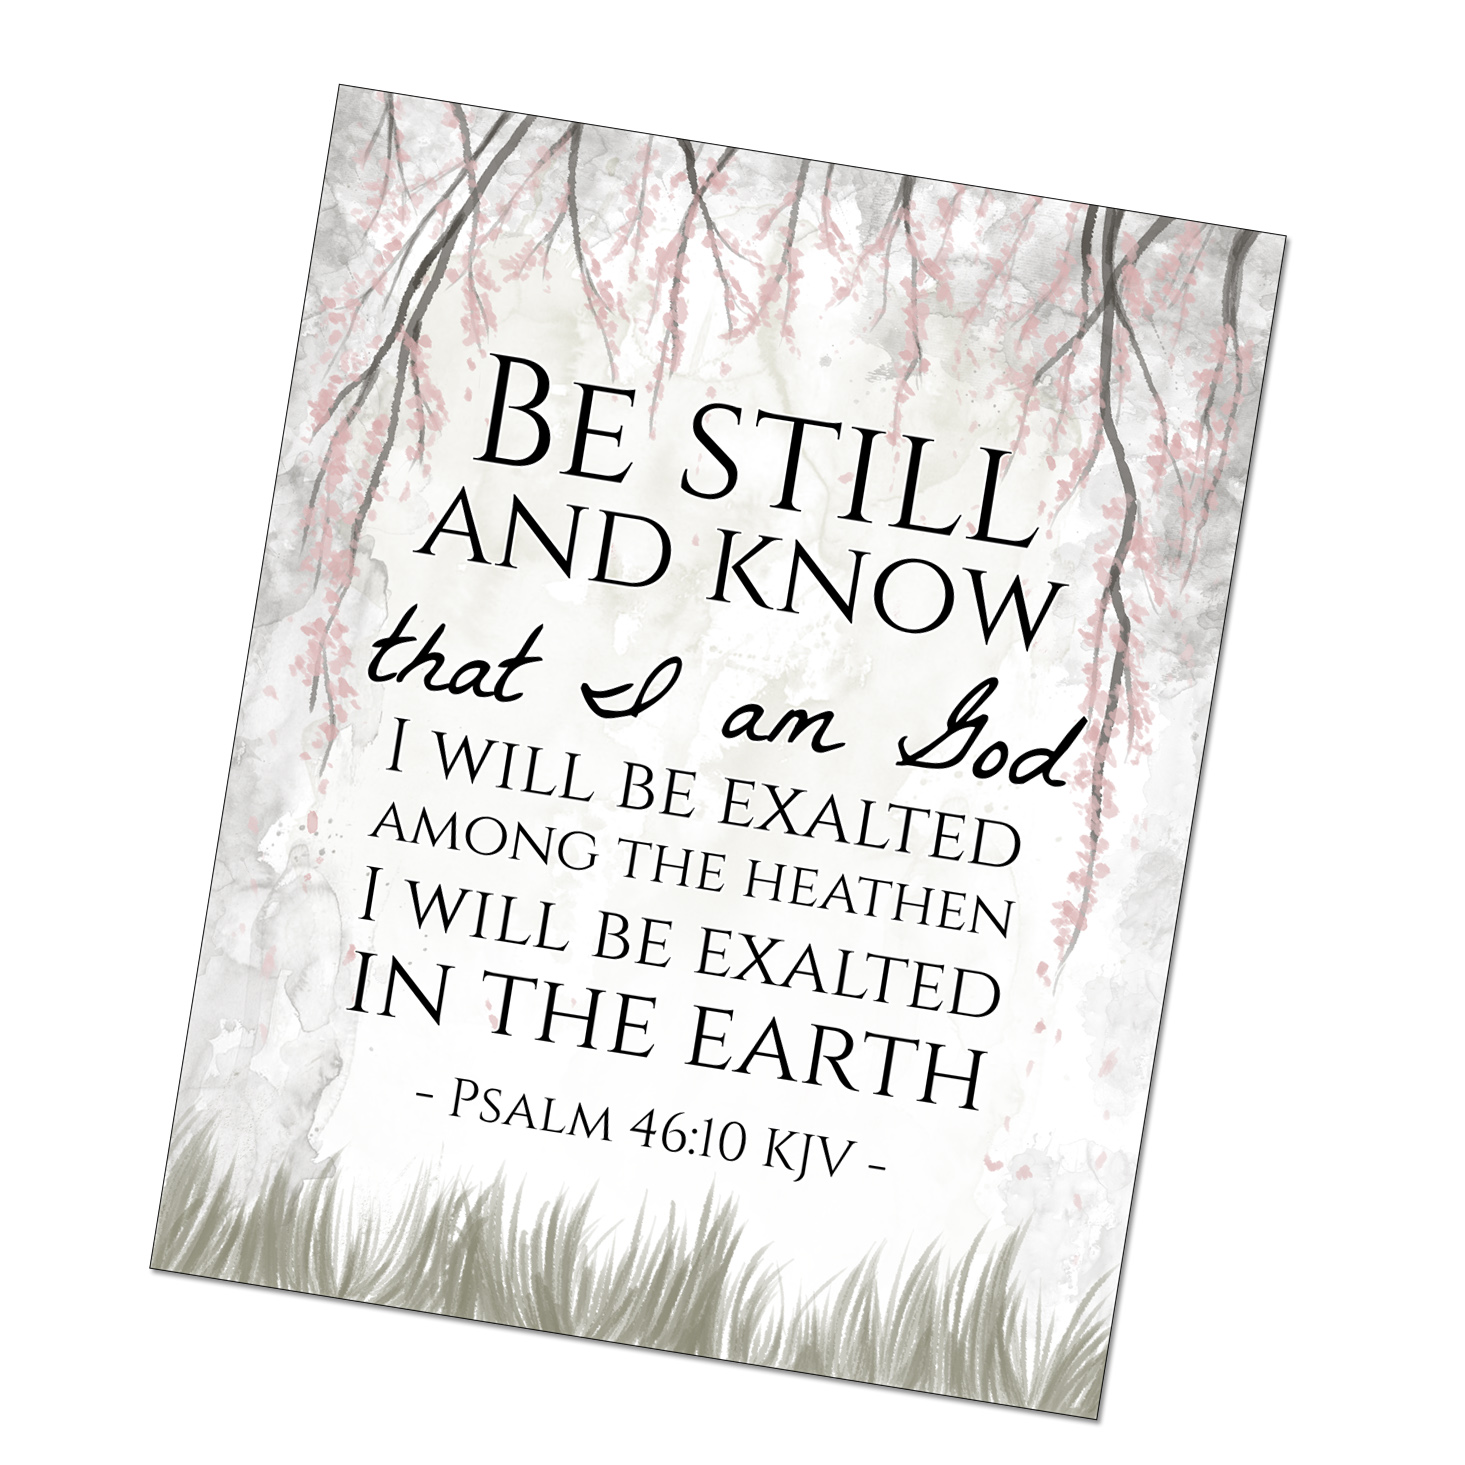 Kjv bible verse clipart black and white download Be Still and Know - Psalms Scripture Printable download